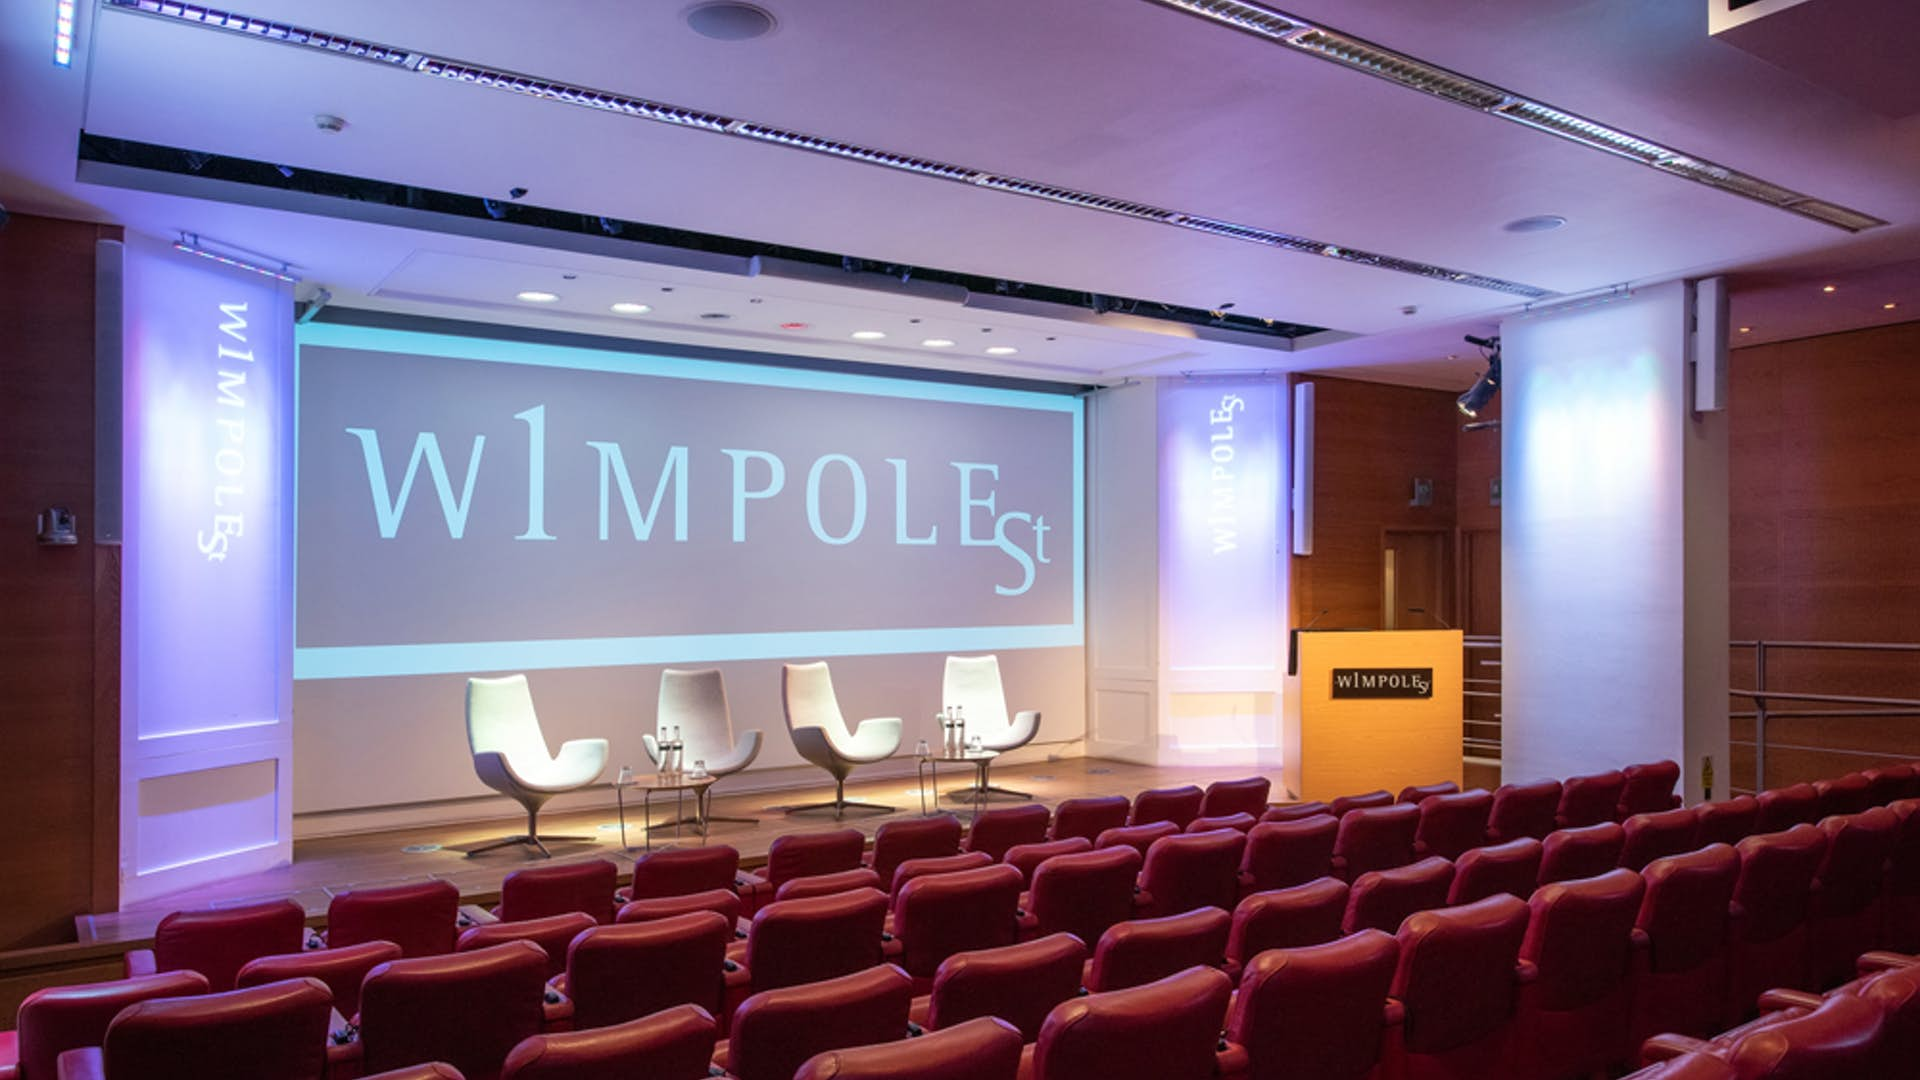 Auditorium view at 1 Wimpole Street